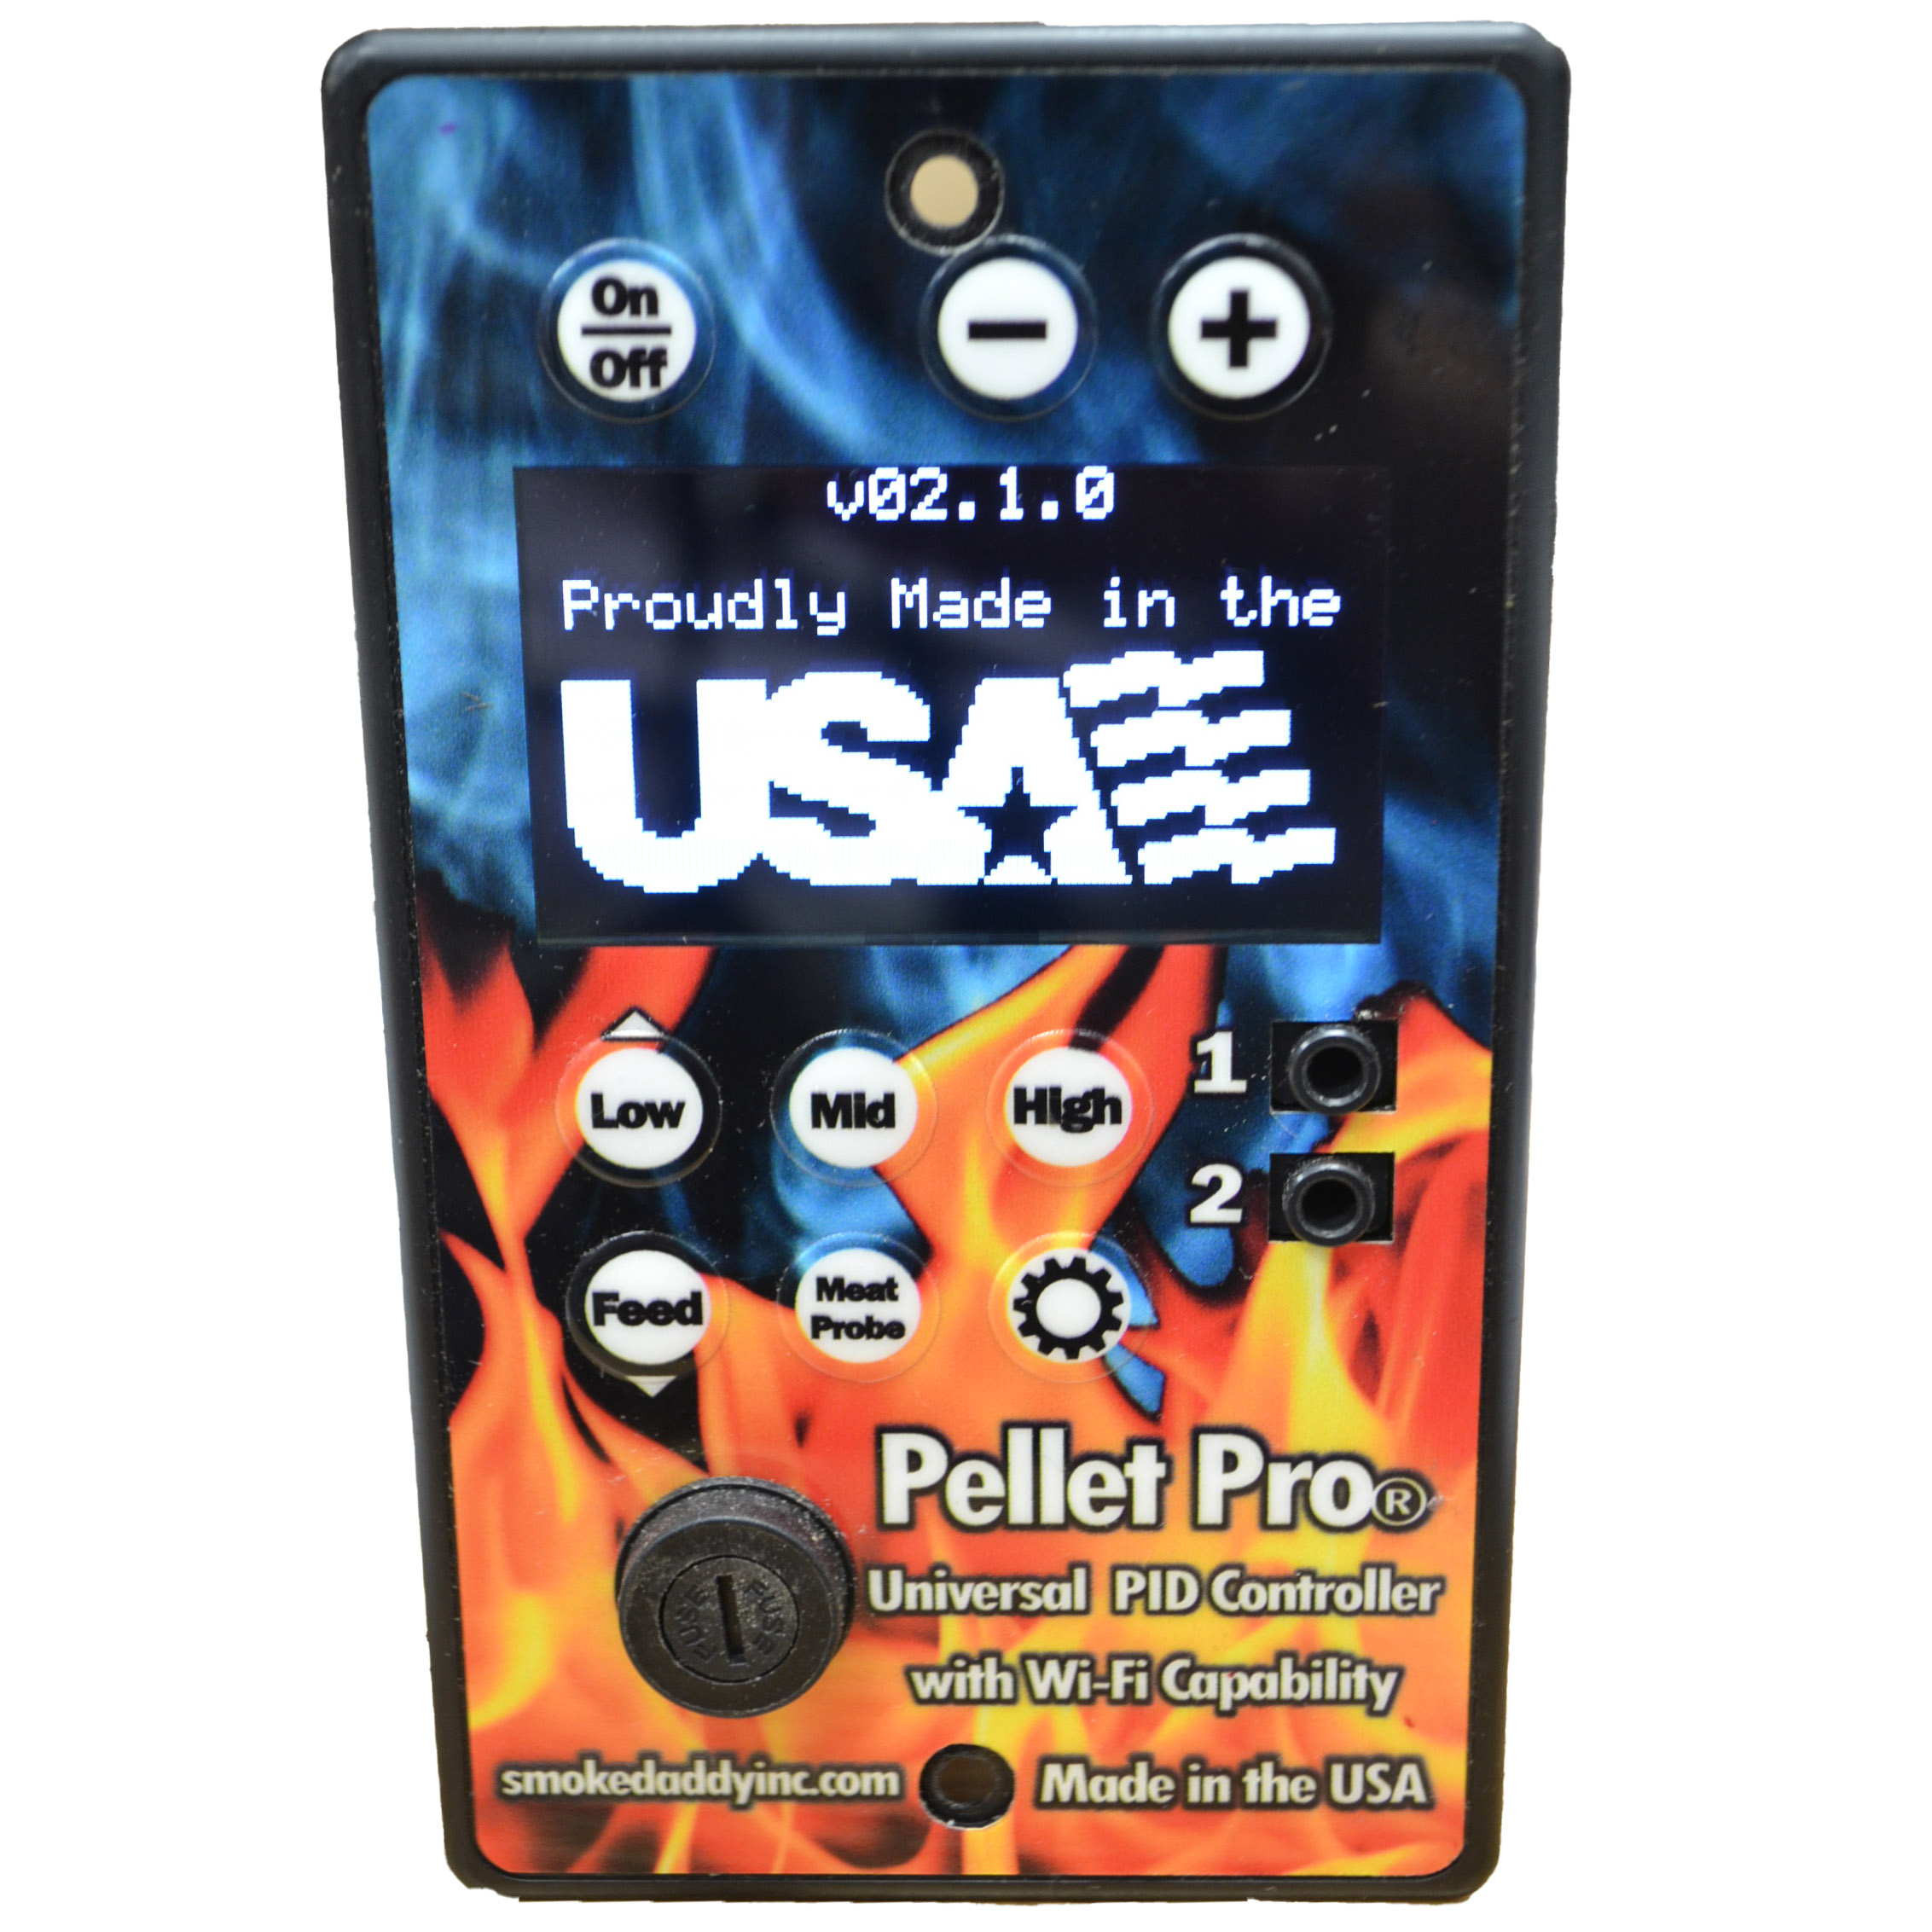 *NEW* Pellet Pro® Patriot PID Controller with Wi-Fi Capability – Upgrade for Pellet Grills